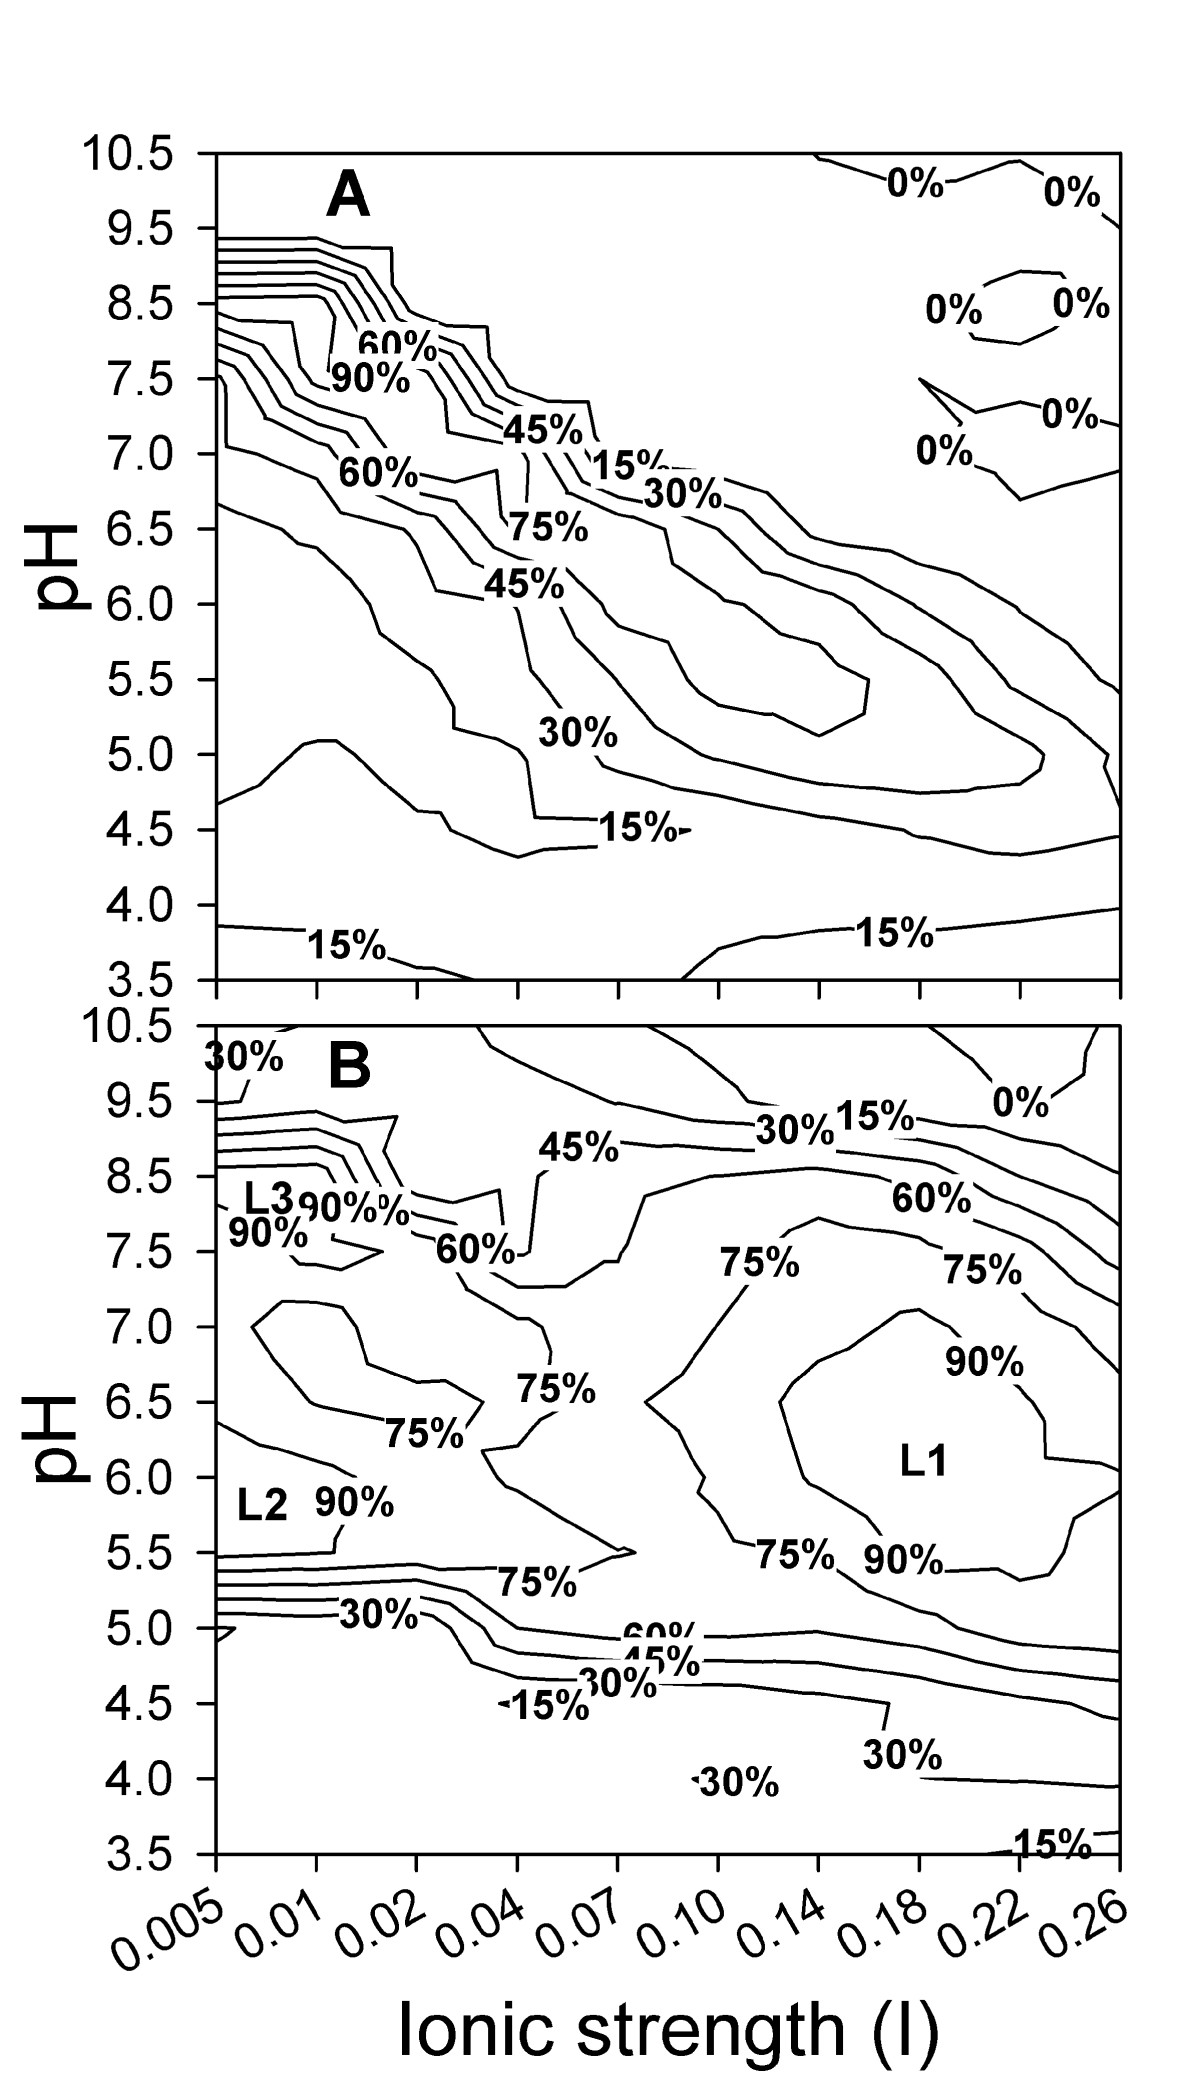 http://static-content.springer.com/image/art%3A10.1186%2F1471-2148-10-213/MediaObjects/12862_2010_Article_1429_Fig3_HTML.jpg